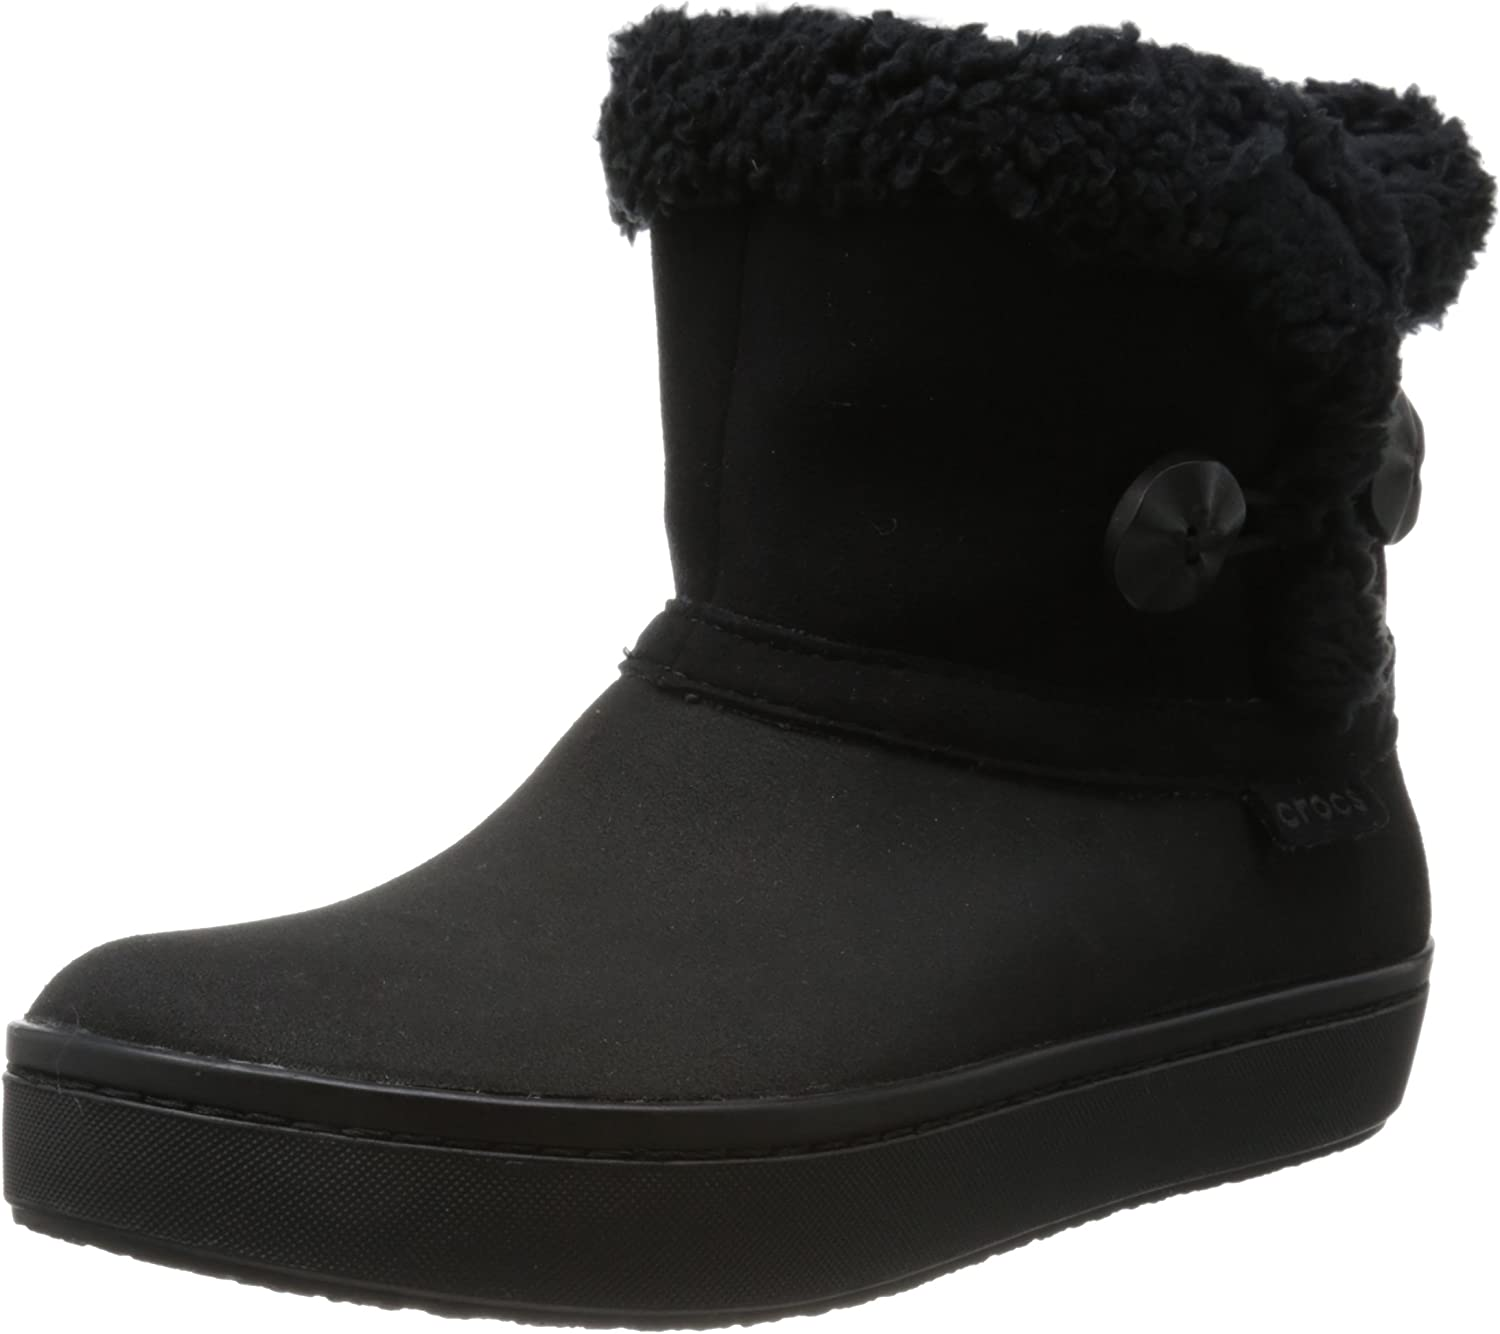 Crocs - Womens Modessa Synth Suede Shorty shoes (5, Black)